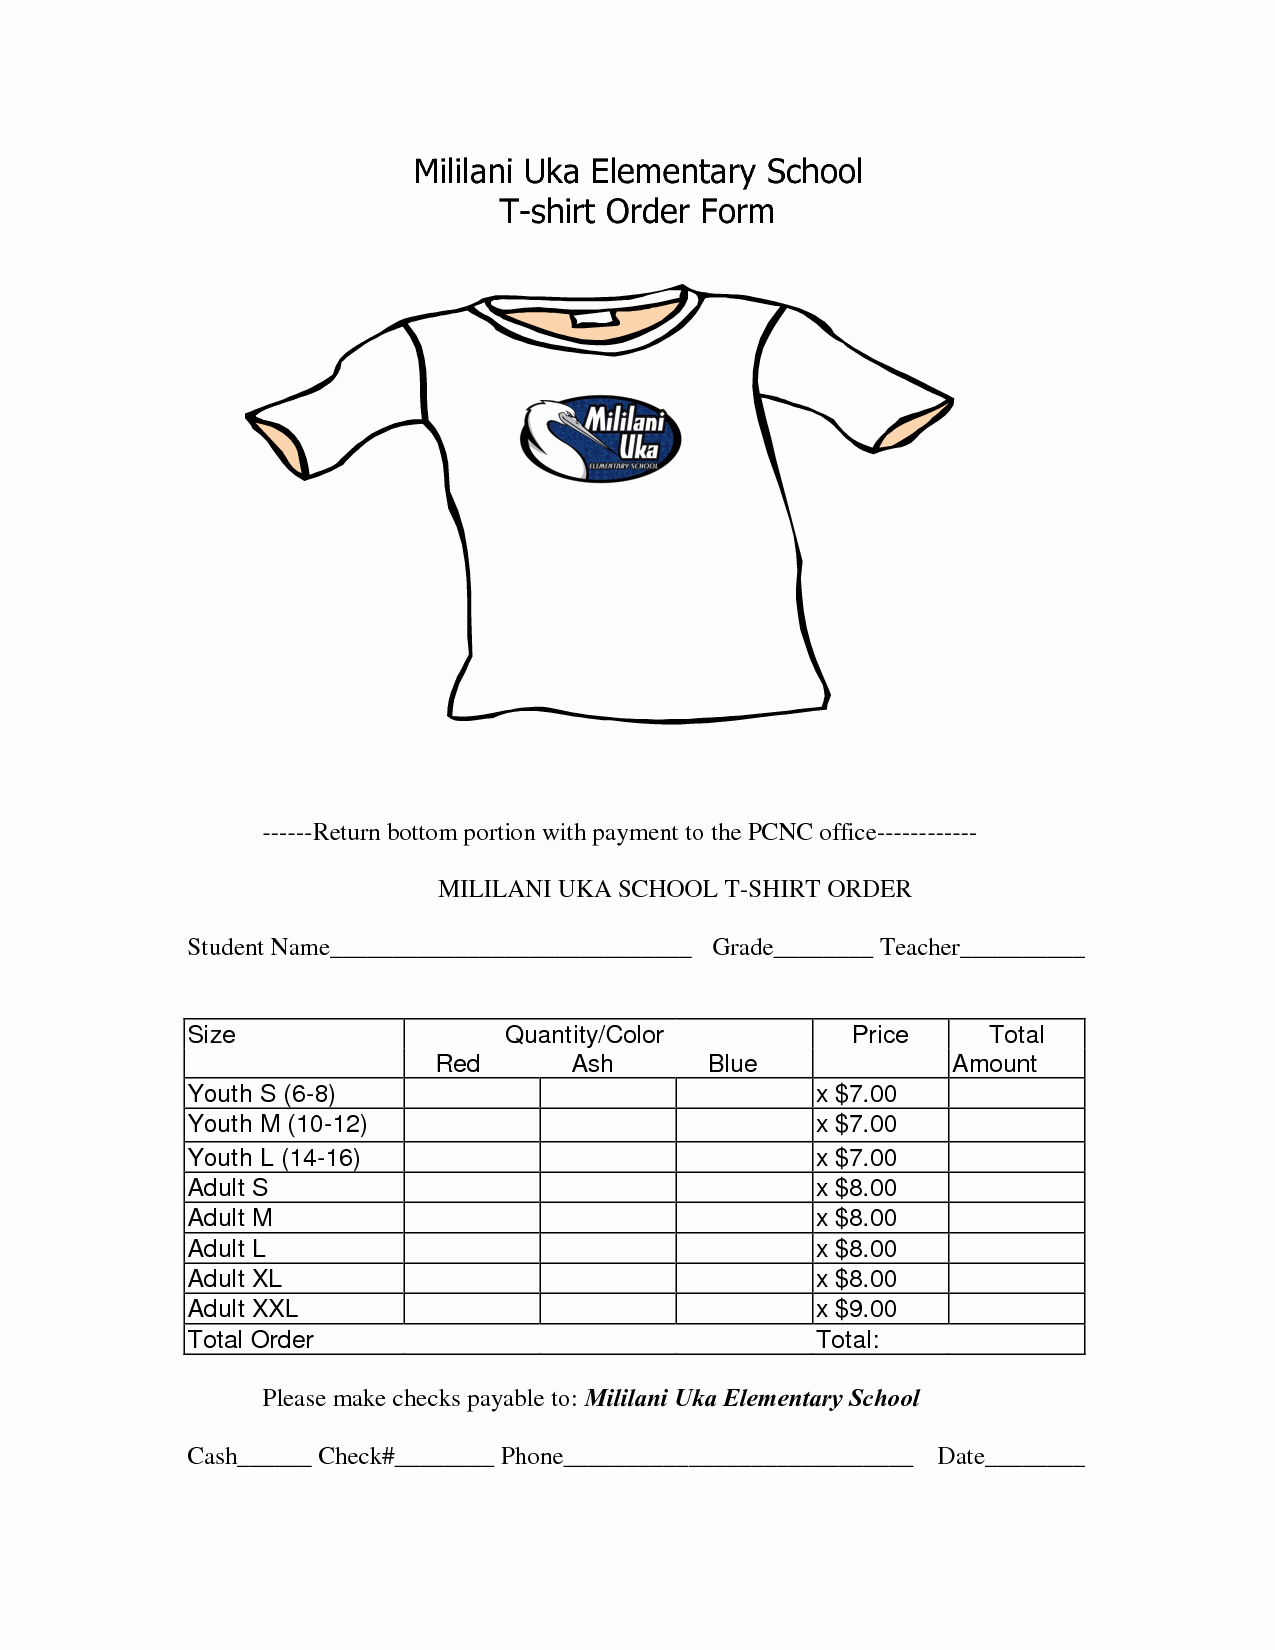 Clothing order form Template Inspirational School T Shirt order form Template Clothes